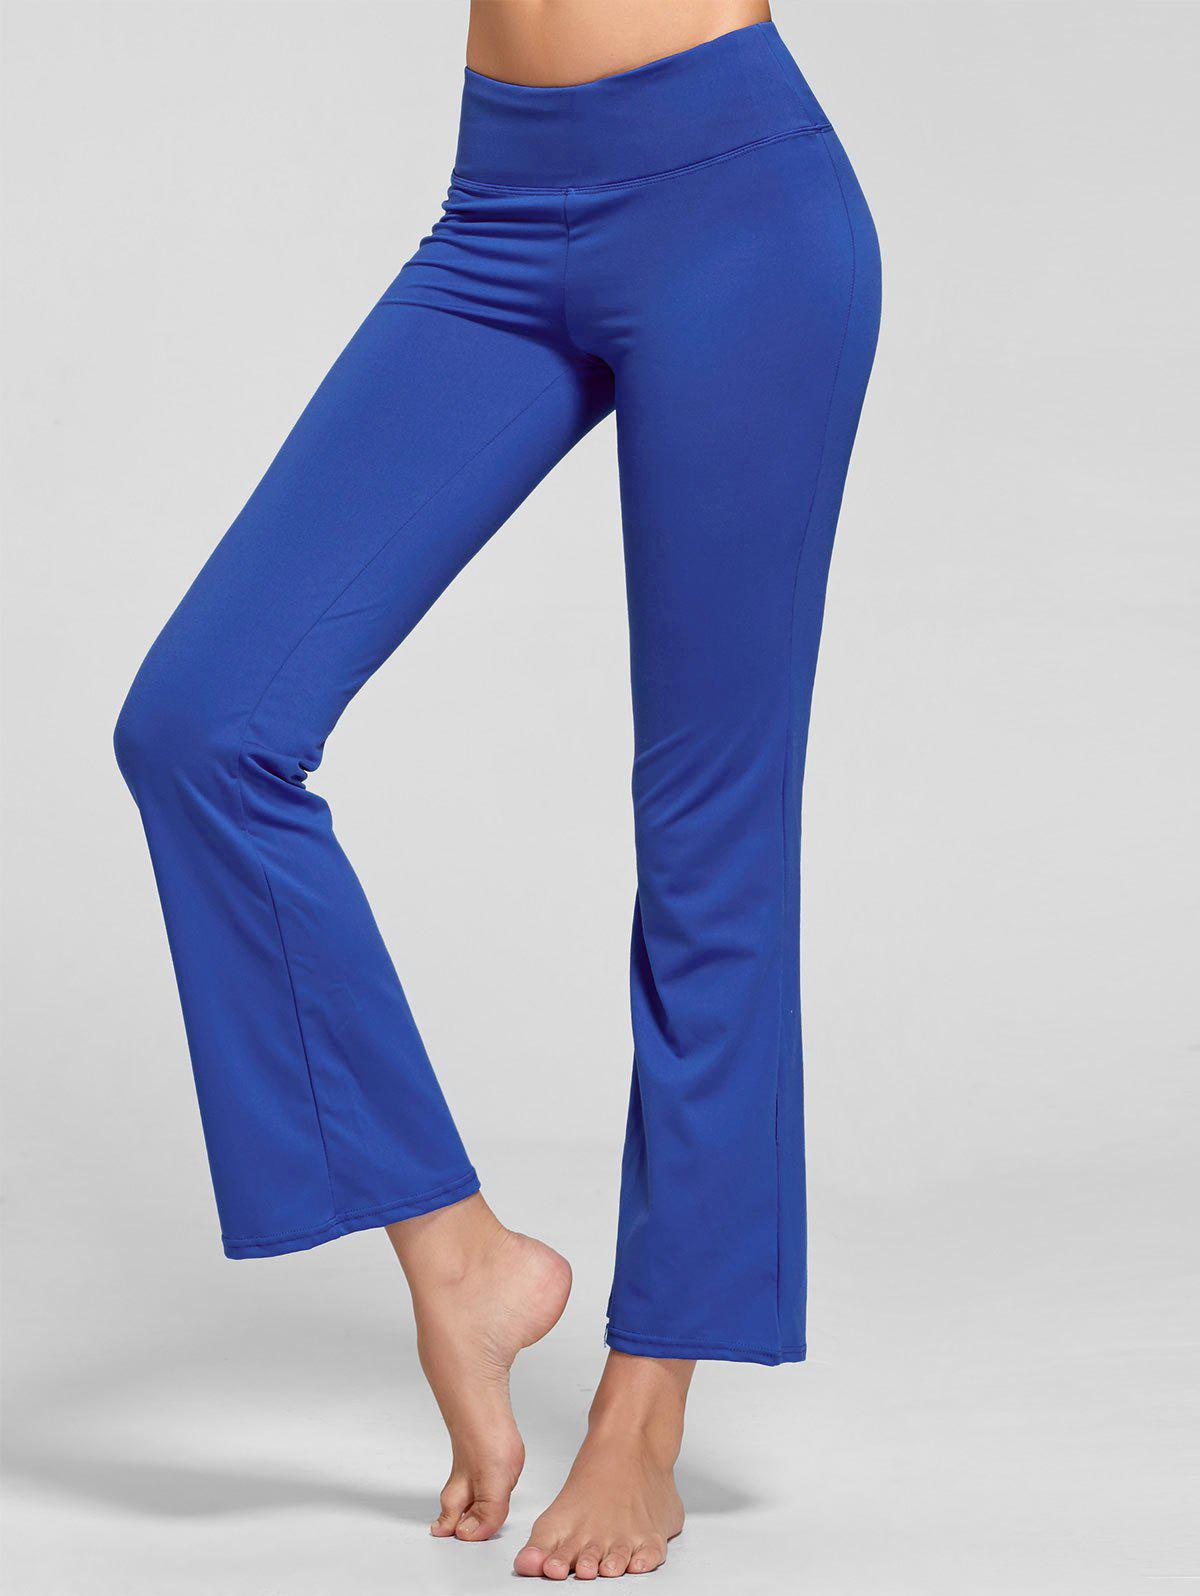 Stretch Bootcut Yoga Pants with Pocket - BLUE M